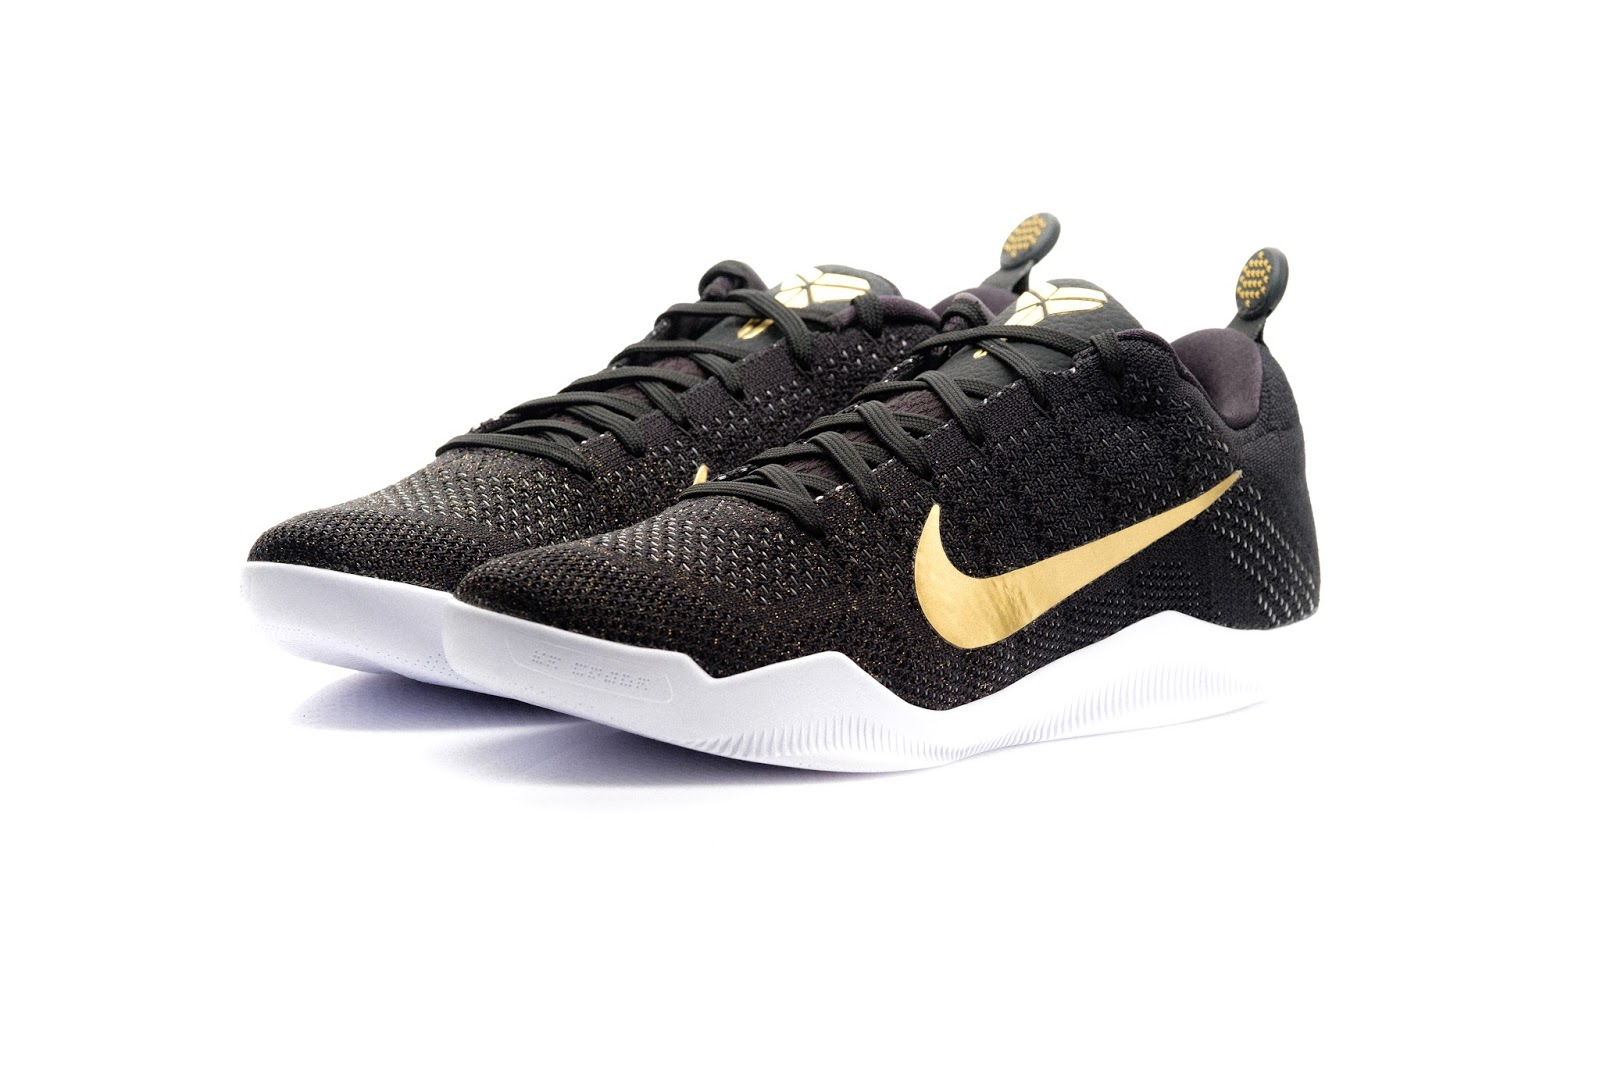 Nike City Court Vii Mens Tennis Shoes Amazon